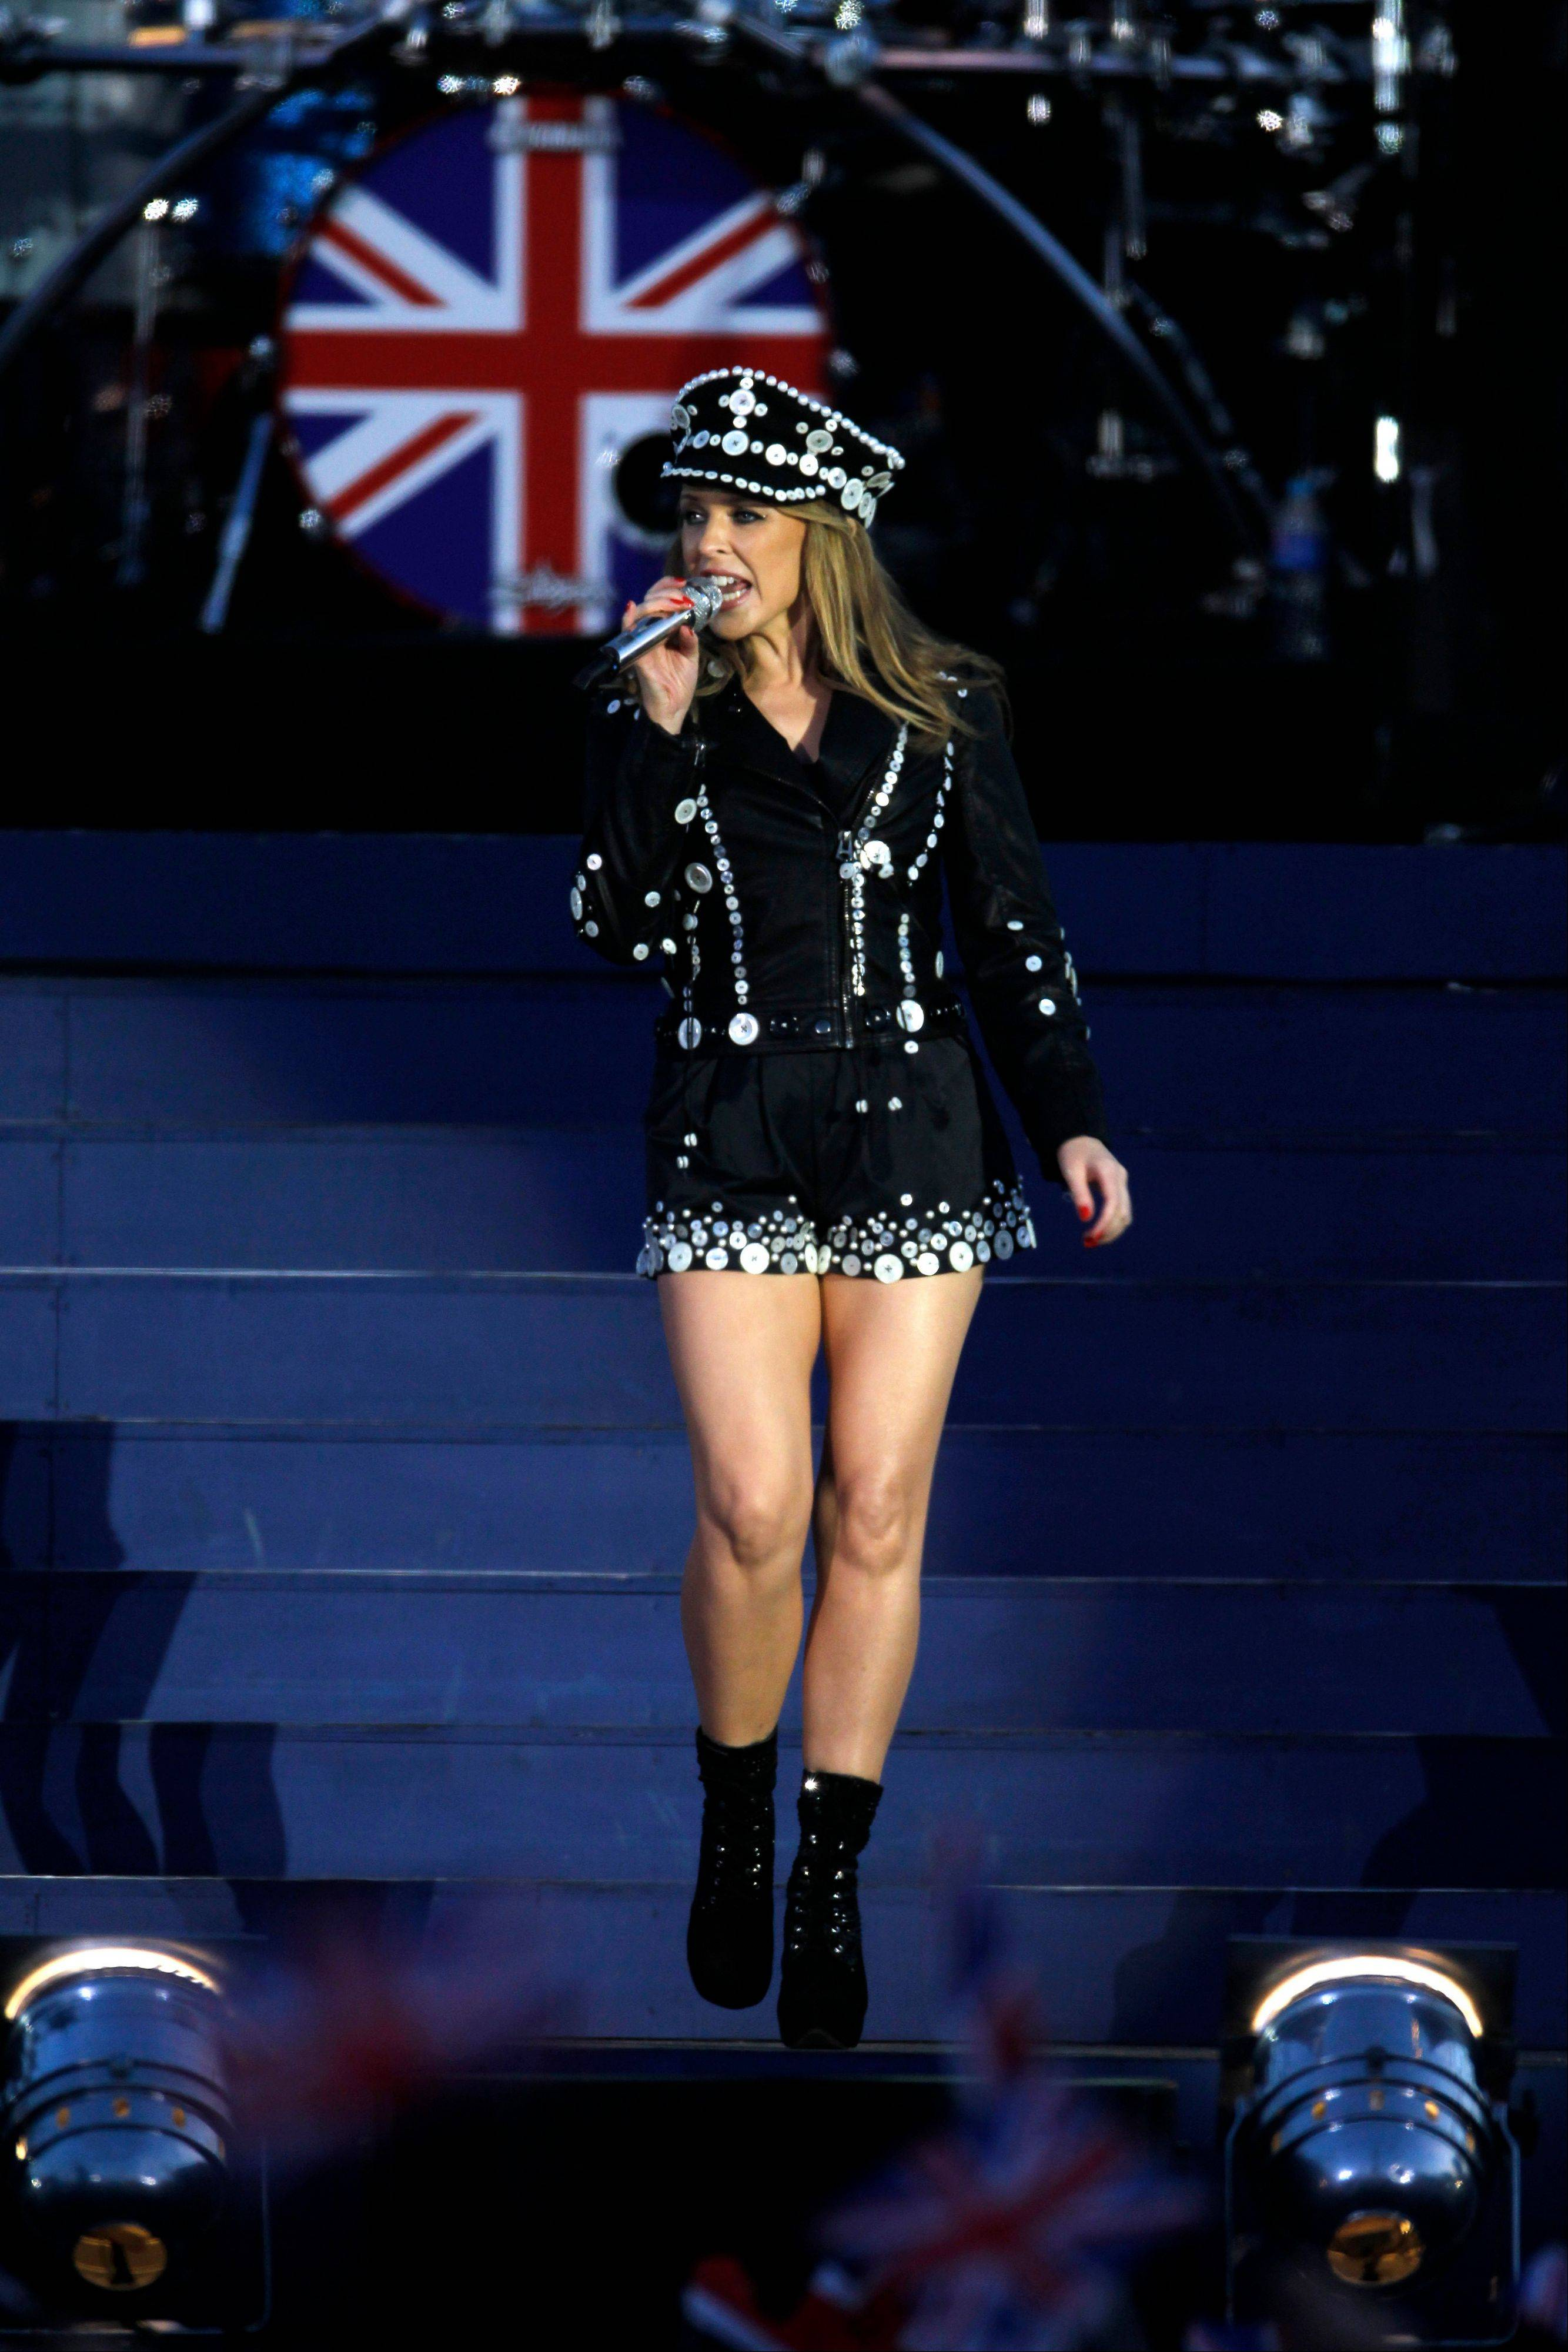 Kylie Minogue performs at the Queen's Jubilee Concert in front of Buckingham Palace, London, Monday, June 4, 2012. The concert is a part of four days of celebrations to mark the 60-year reign of Britain's Queen Elizabeth II.